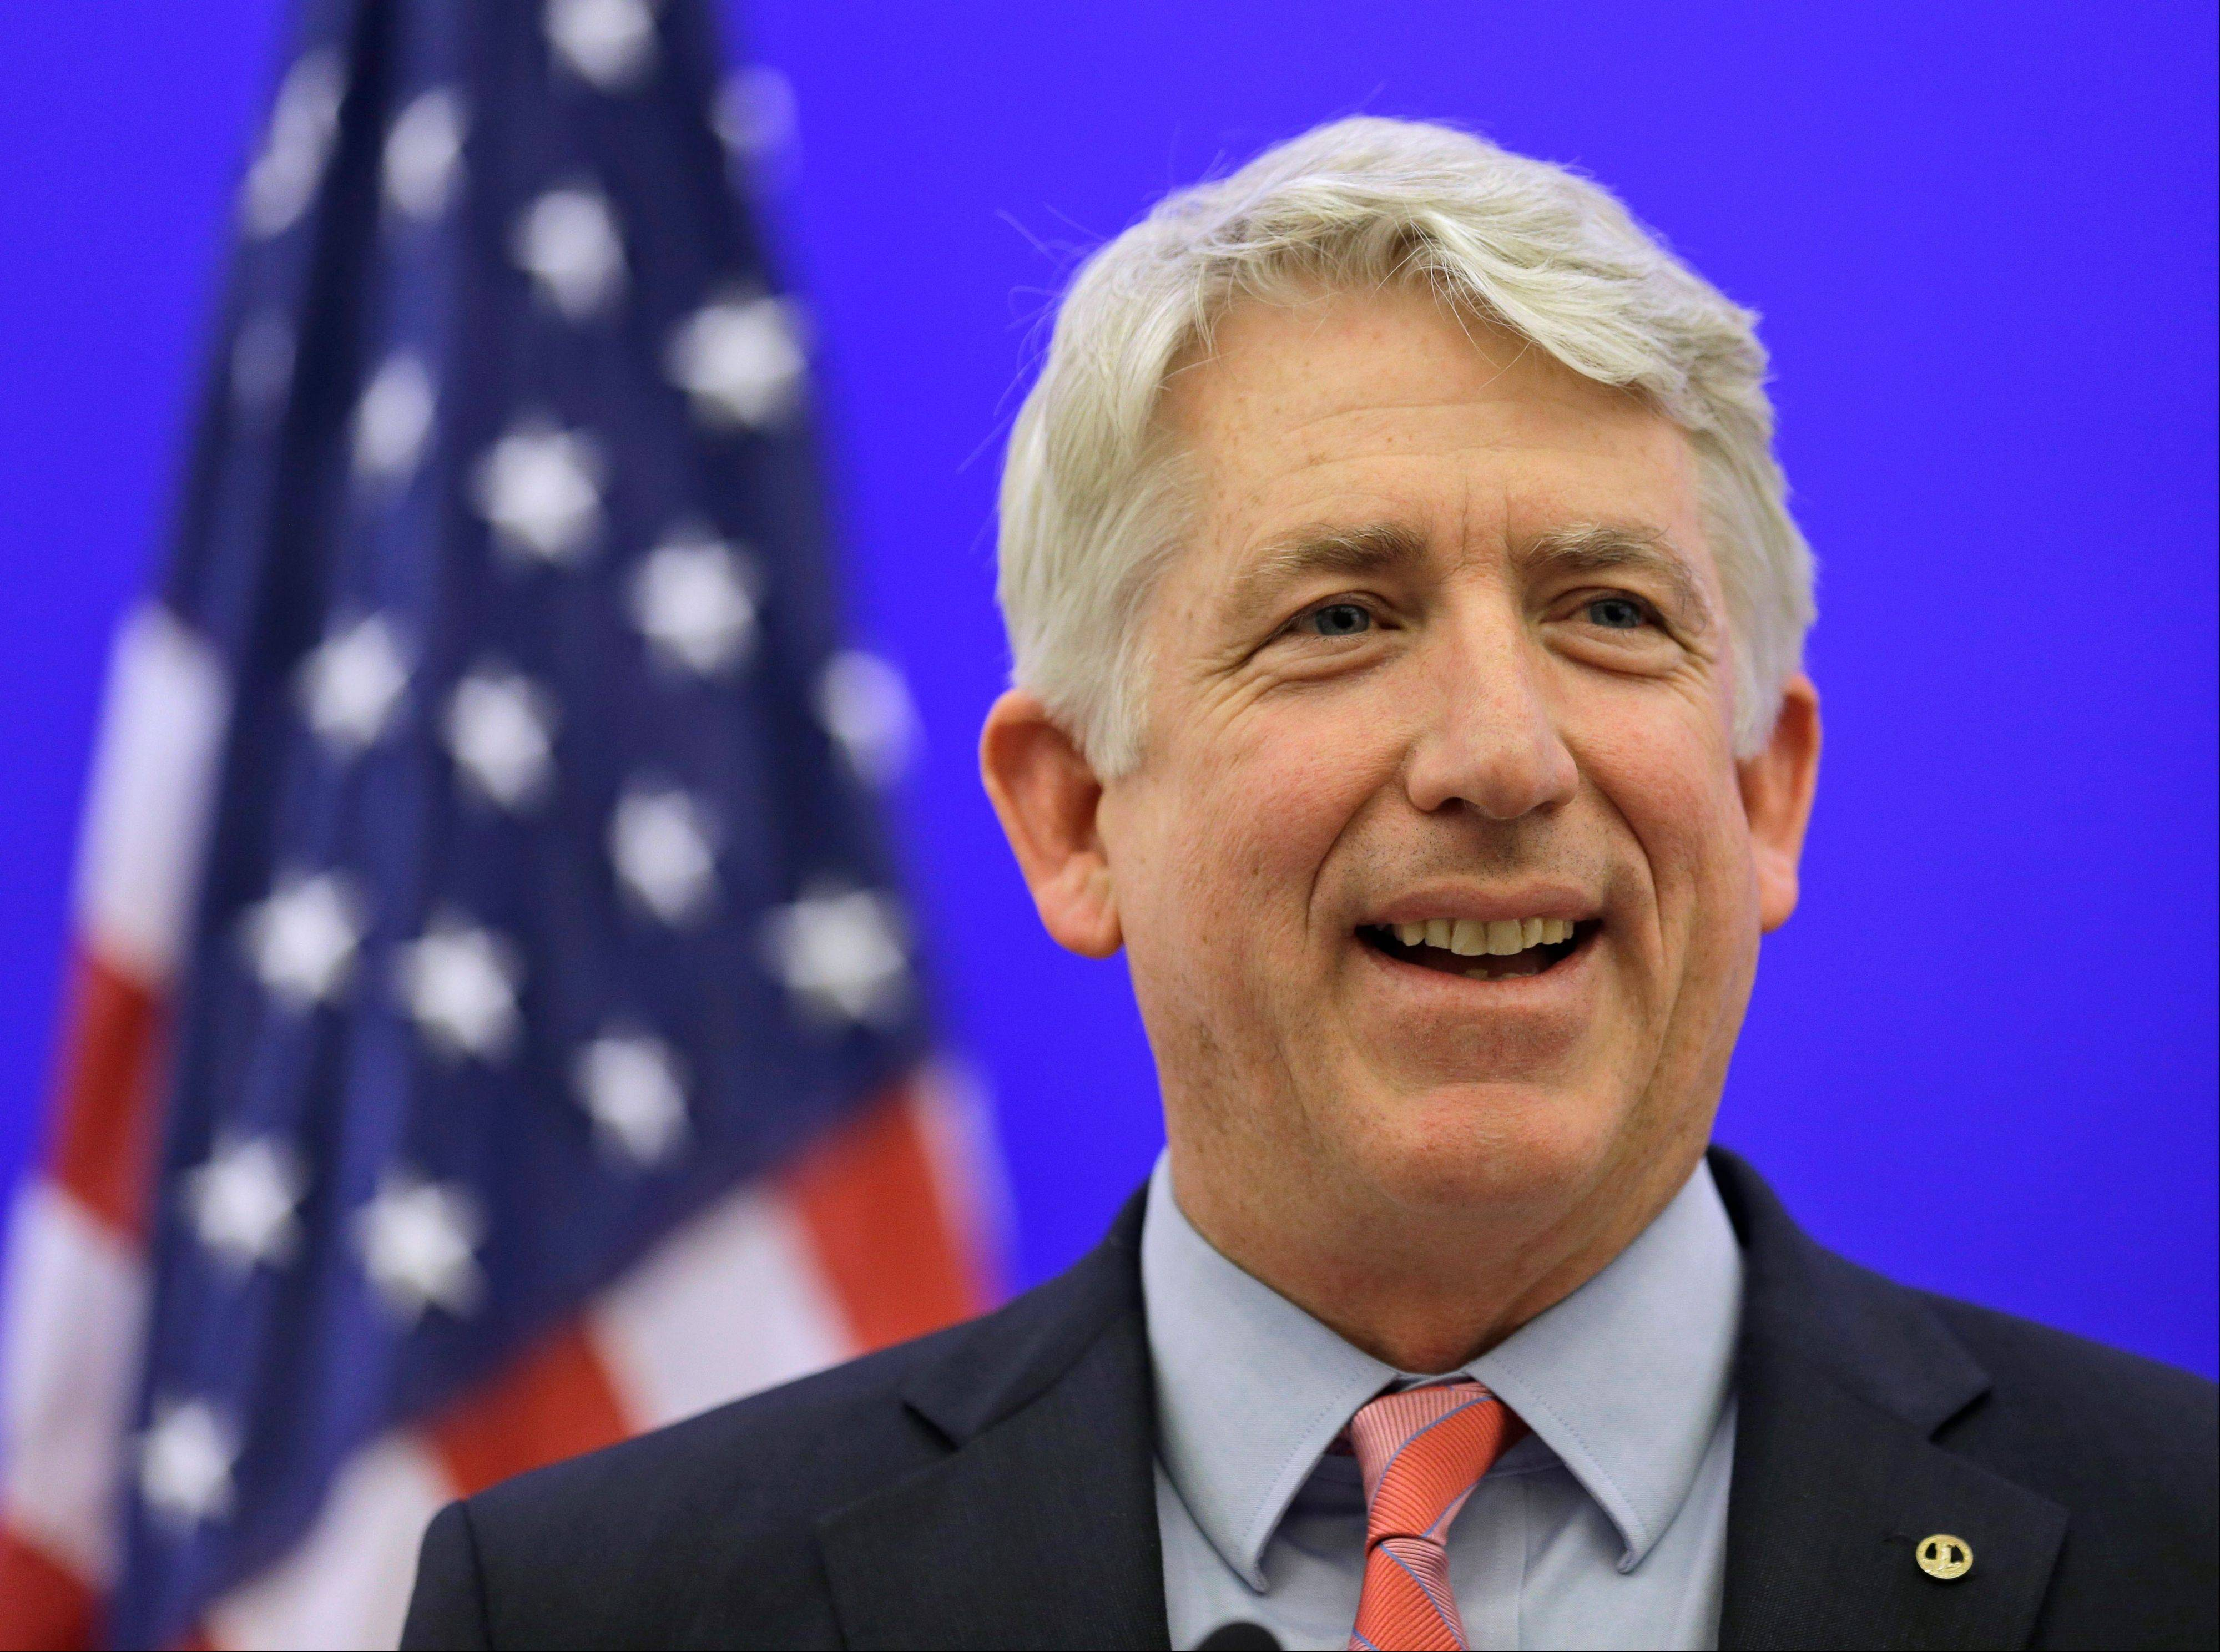 Associated Press File PhotoVirginia Attorney General-elect Mark Herring has concluded that the state's ban on gay marriage is unconstitutional and he will no longer defend it in federal lawsuits challenging it, his office said Thursday Jan. 23, 2014.